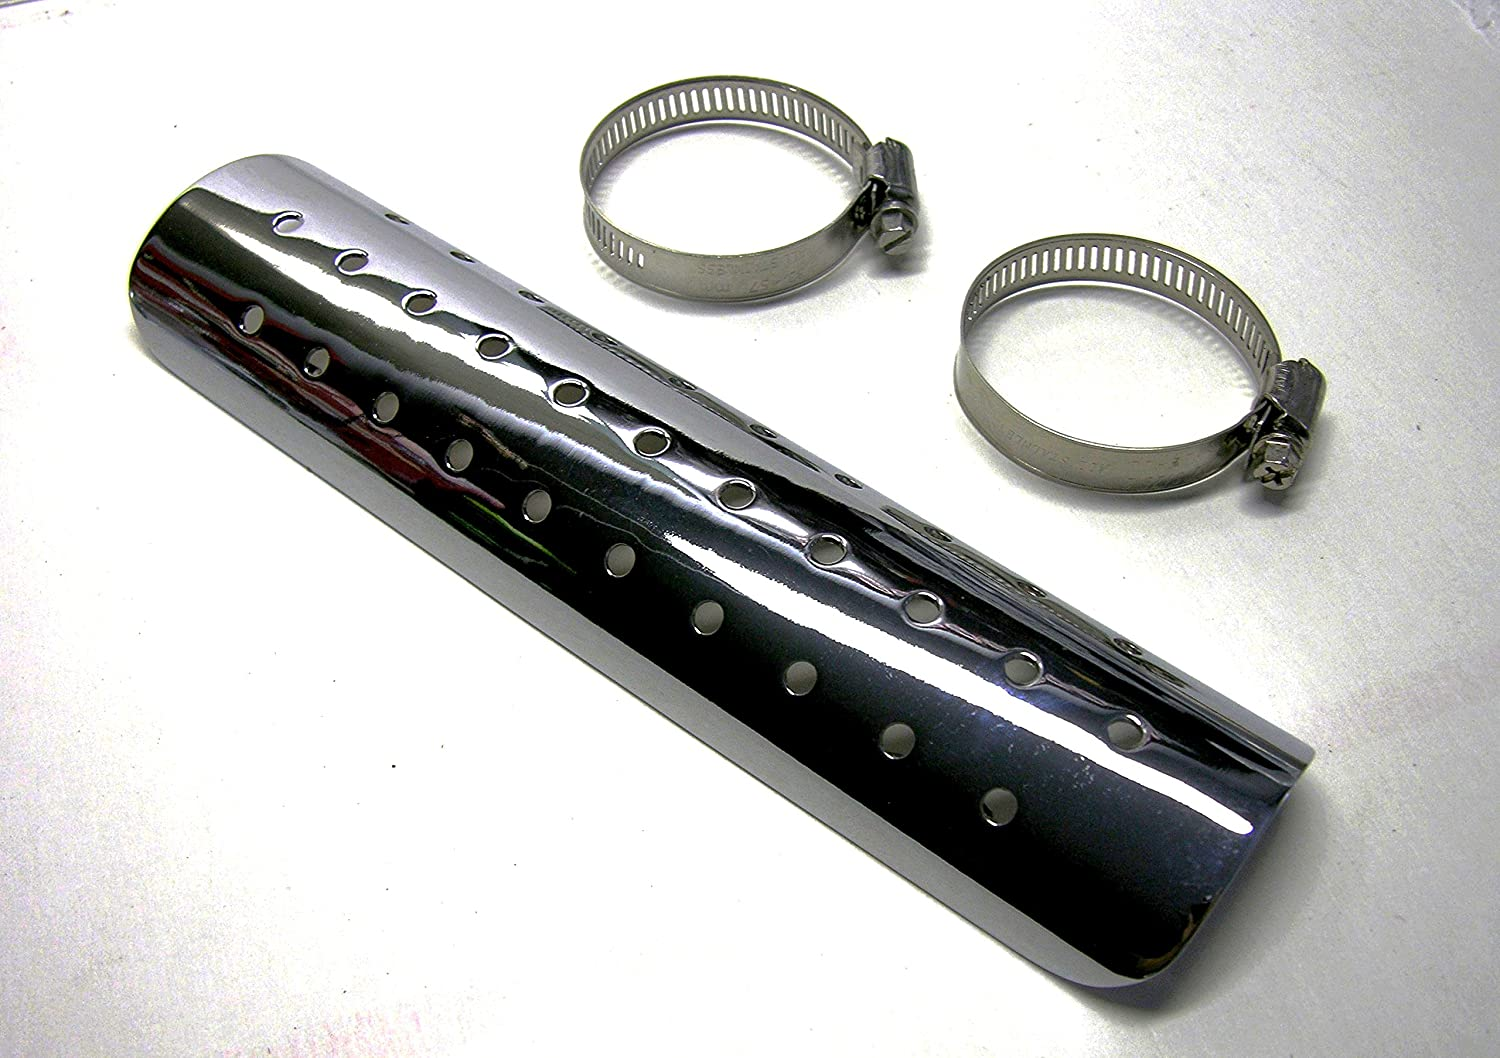 Mr Luckys Chrome 9 Inch Award-winning store Harley for Heatshield Motorcycle Bobber Max 89% OFF